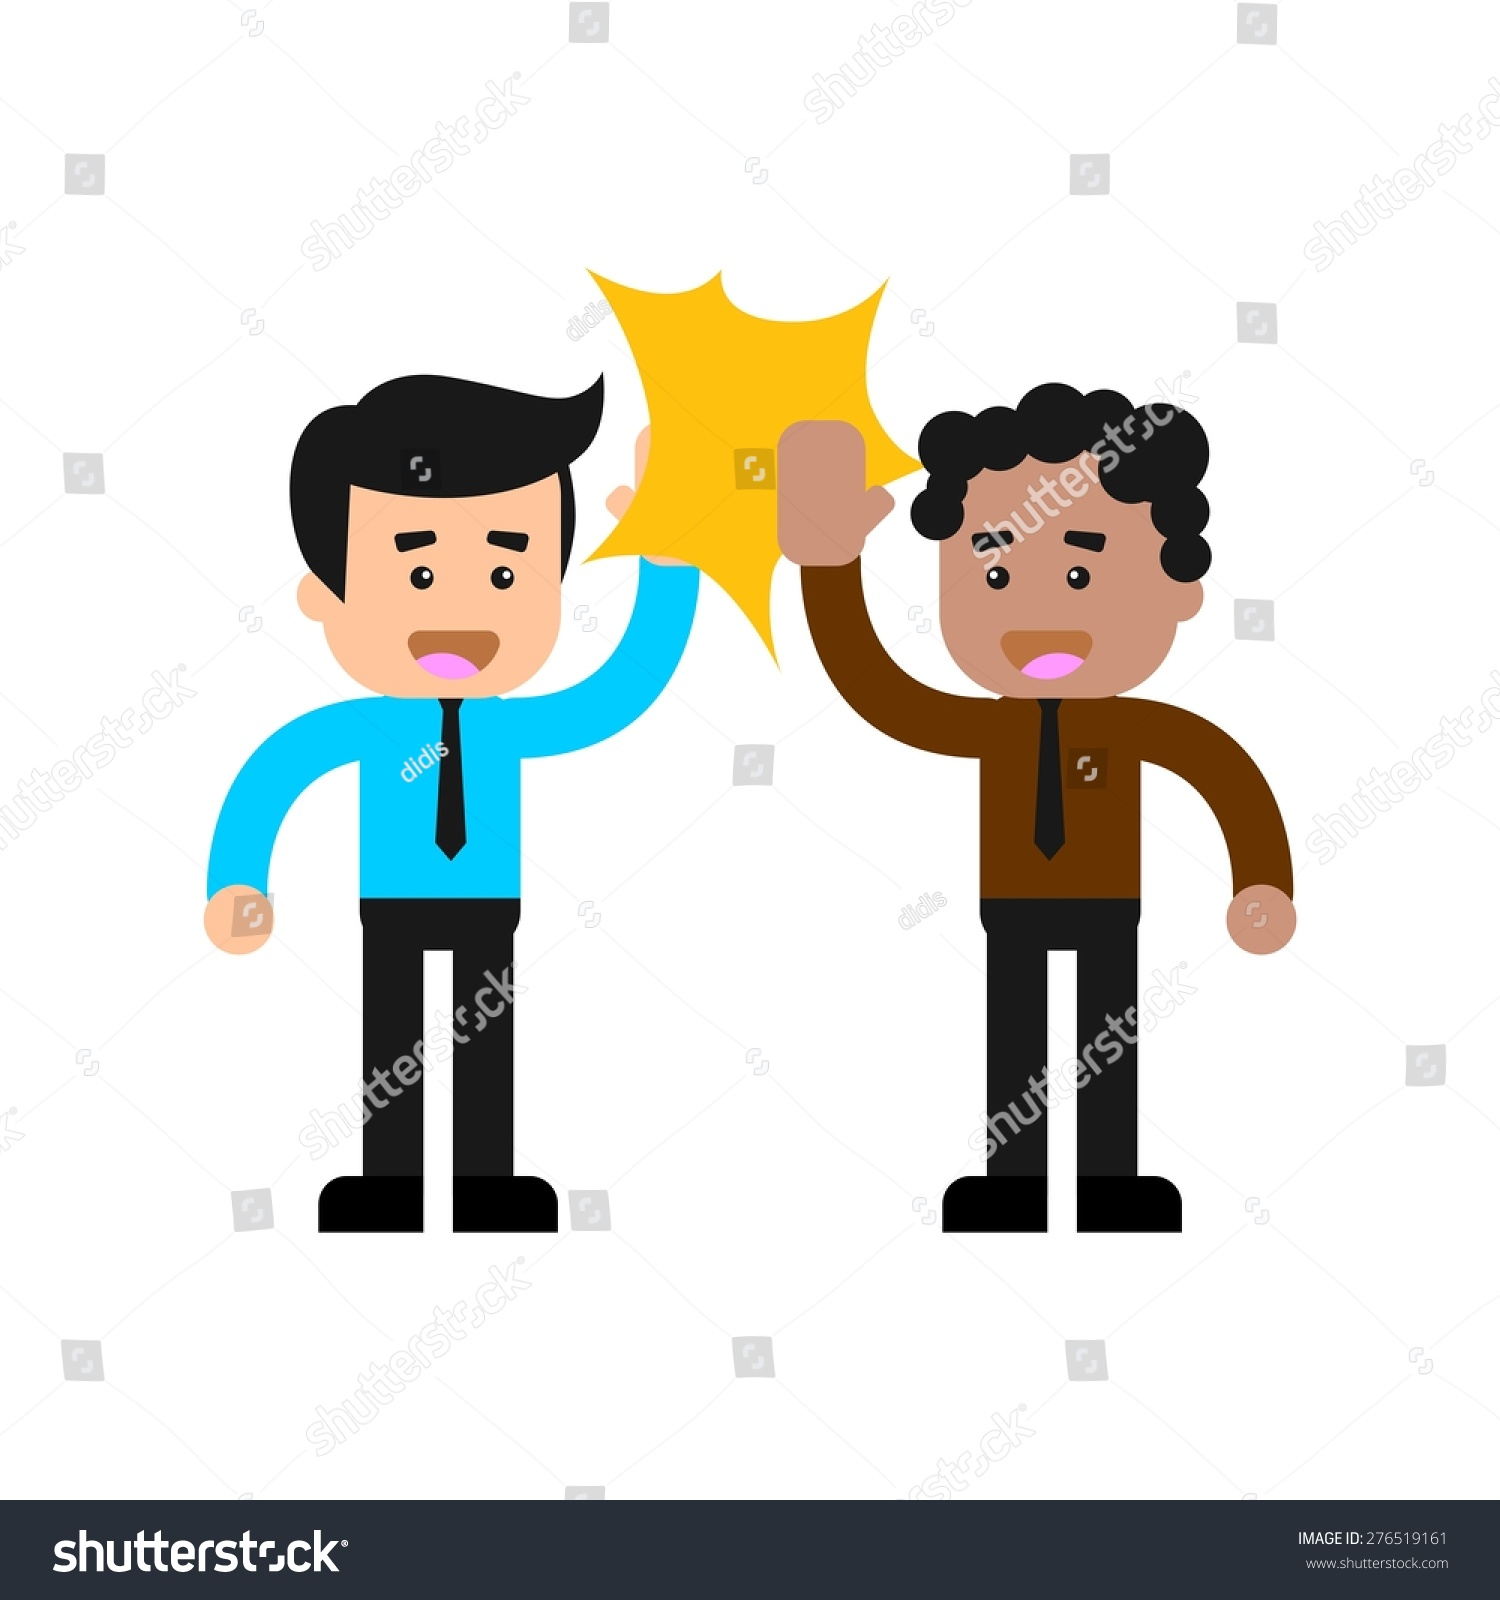 Business Man Doing High Five Colleagues Stock Vector 276519161 ...